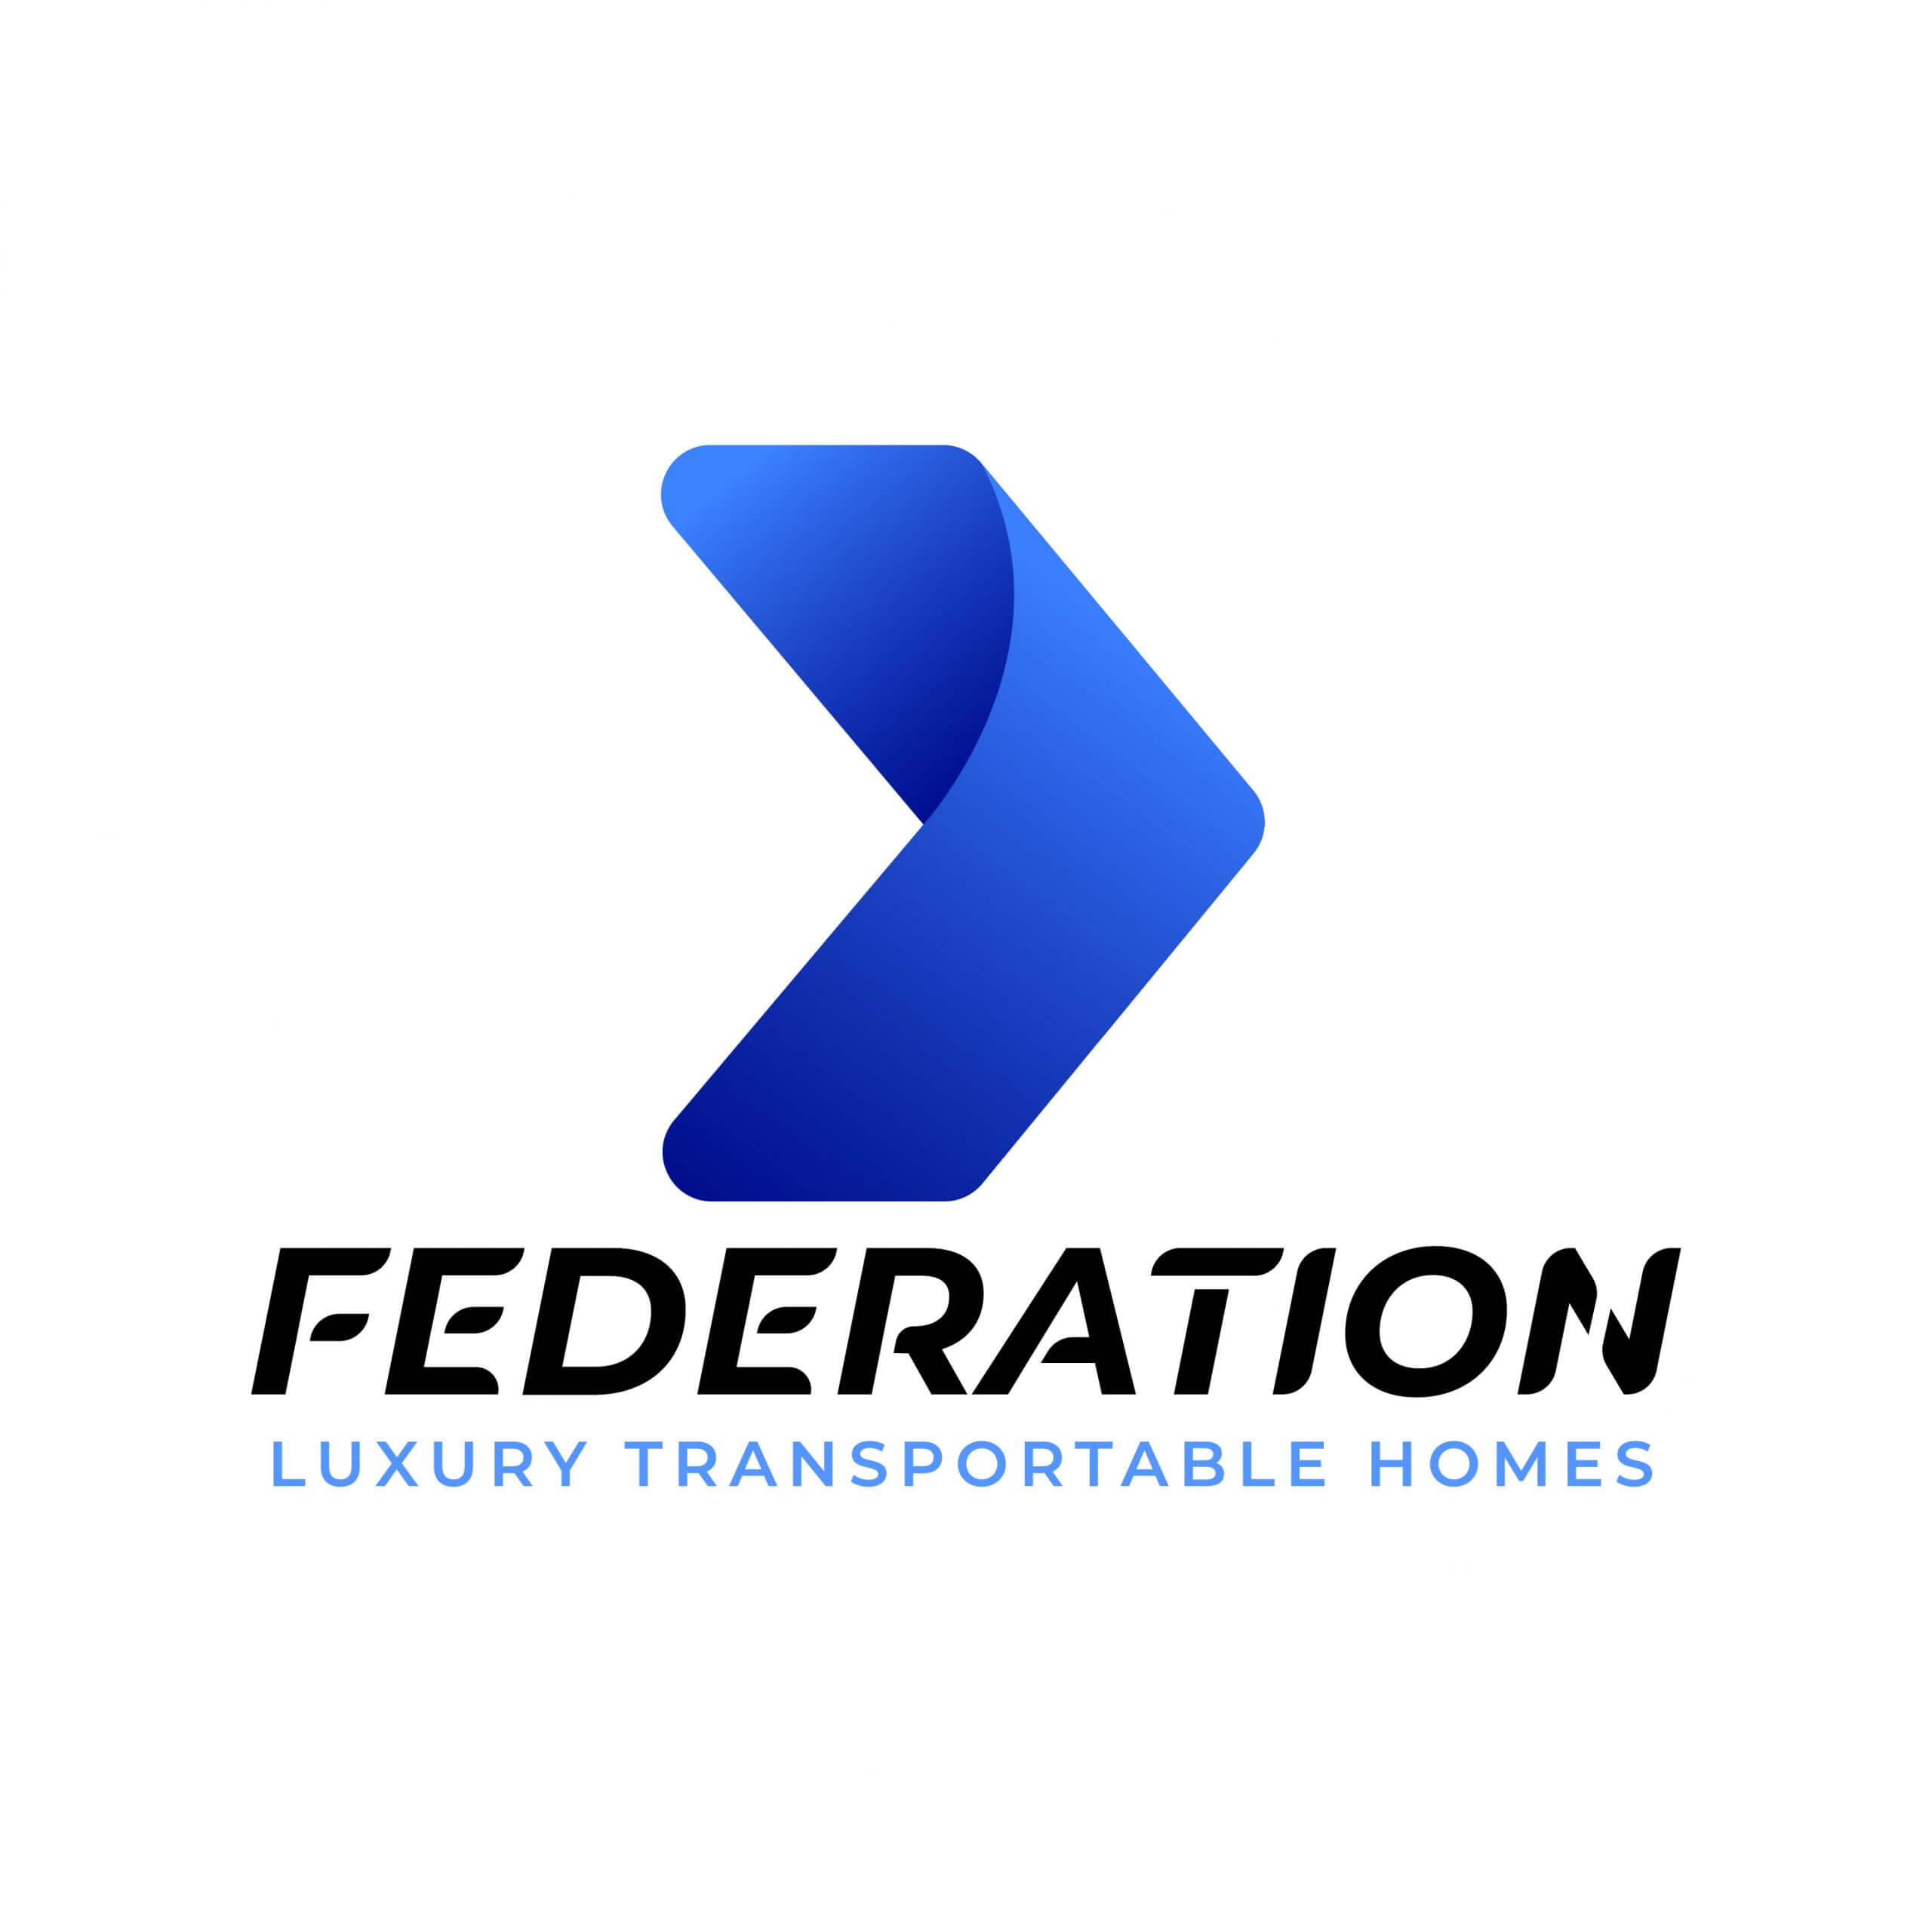 Federation Luxury Transportable Homes logo